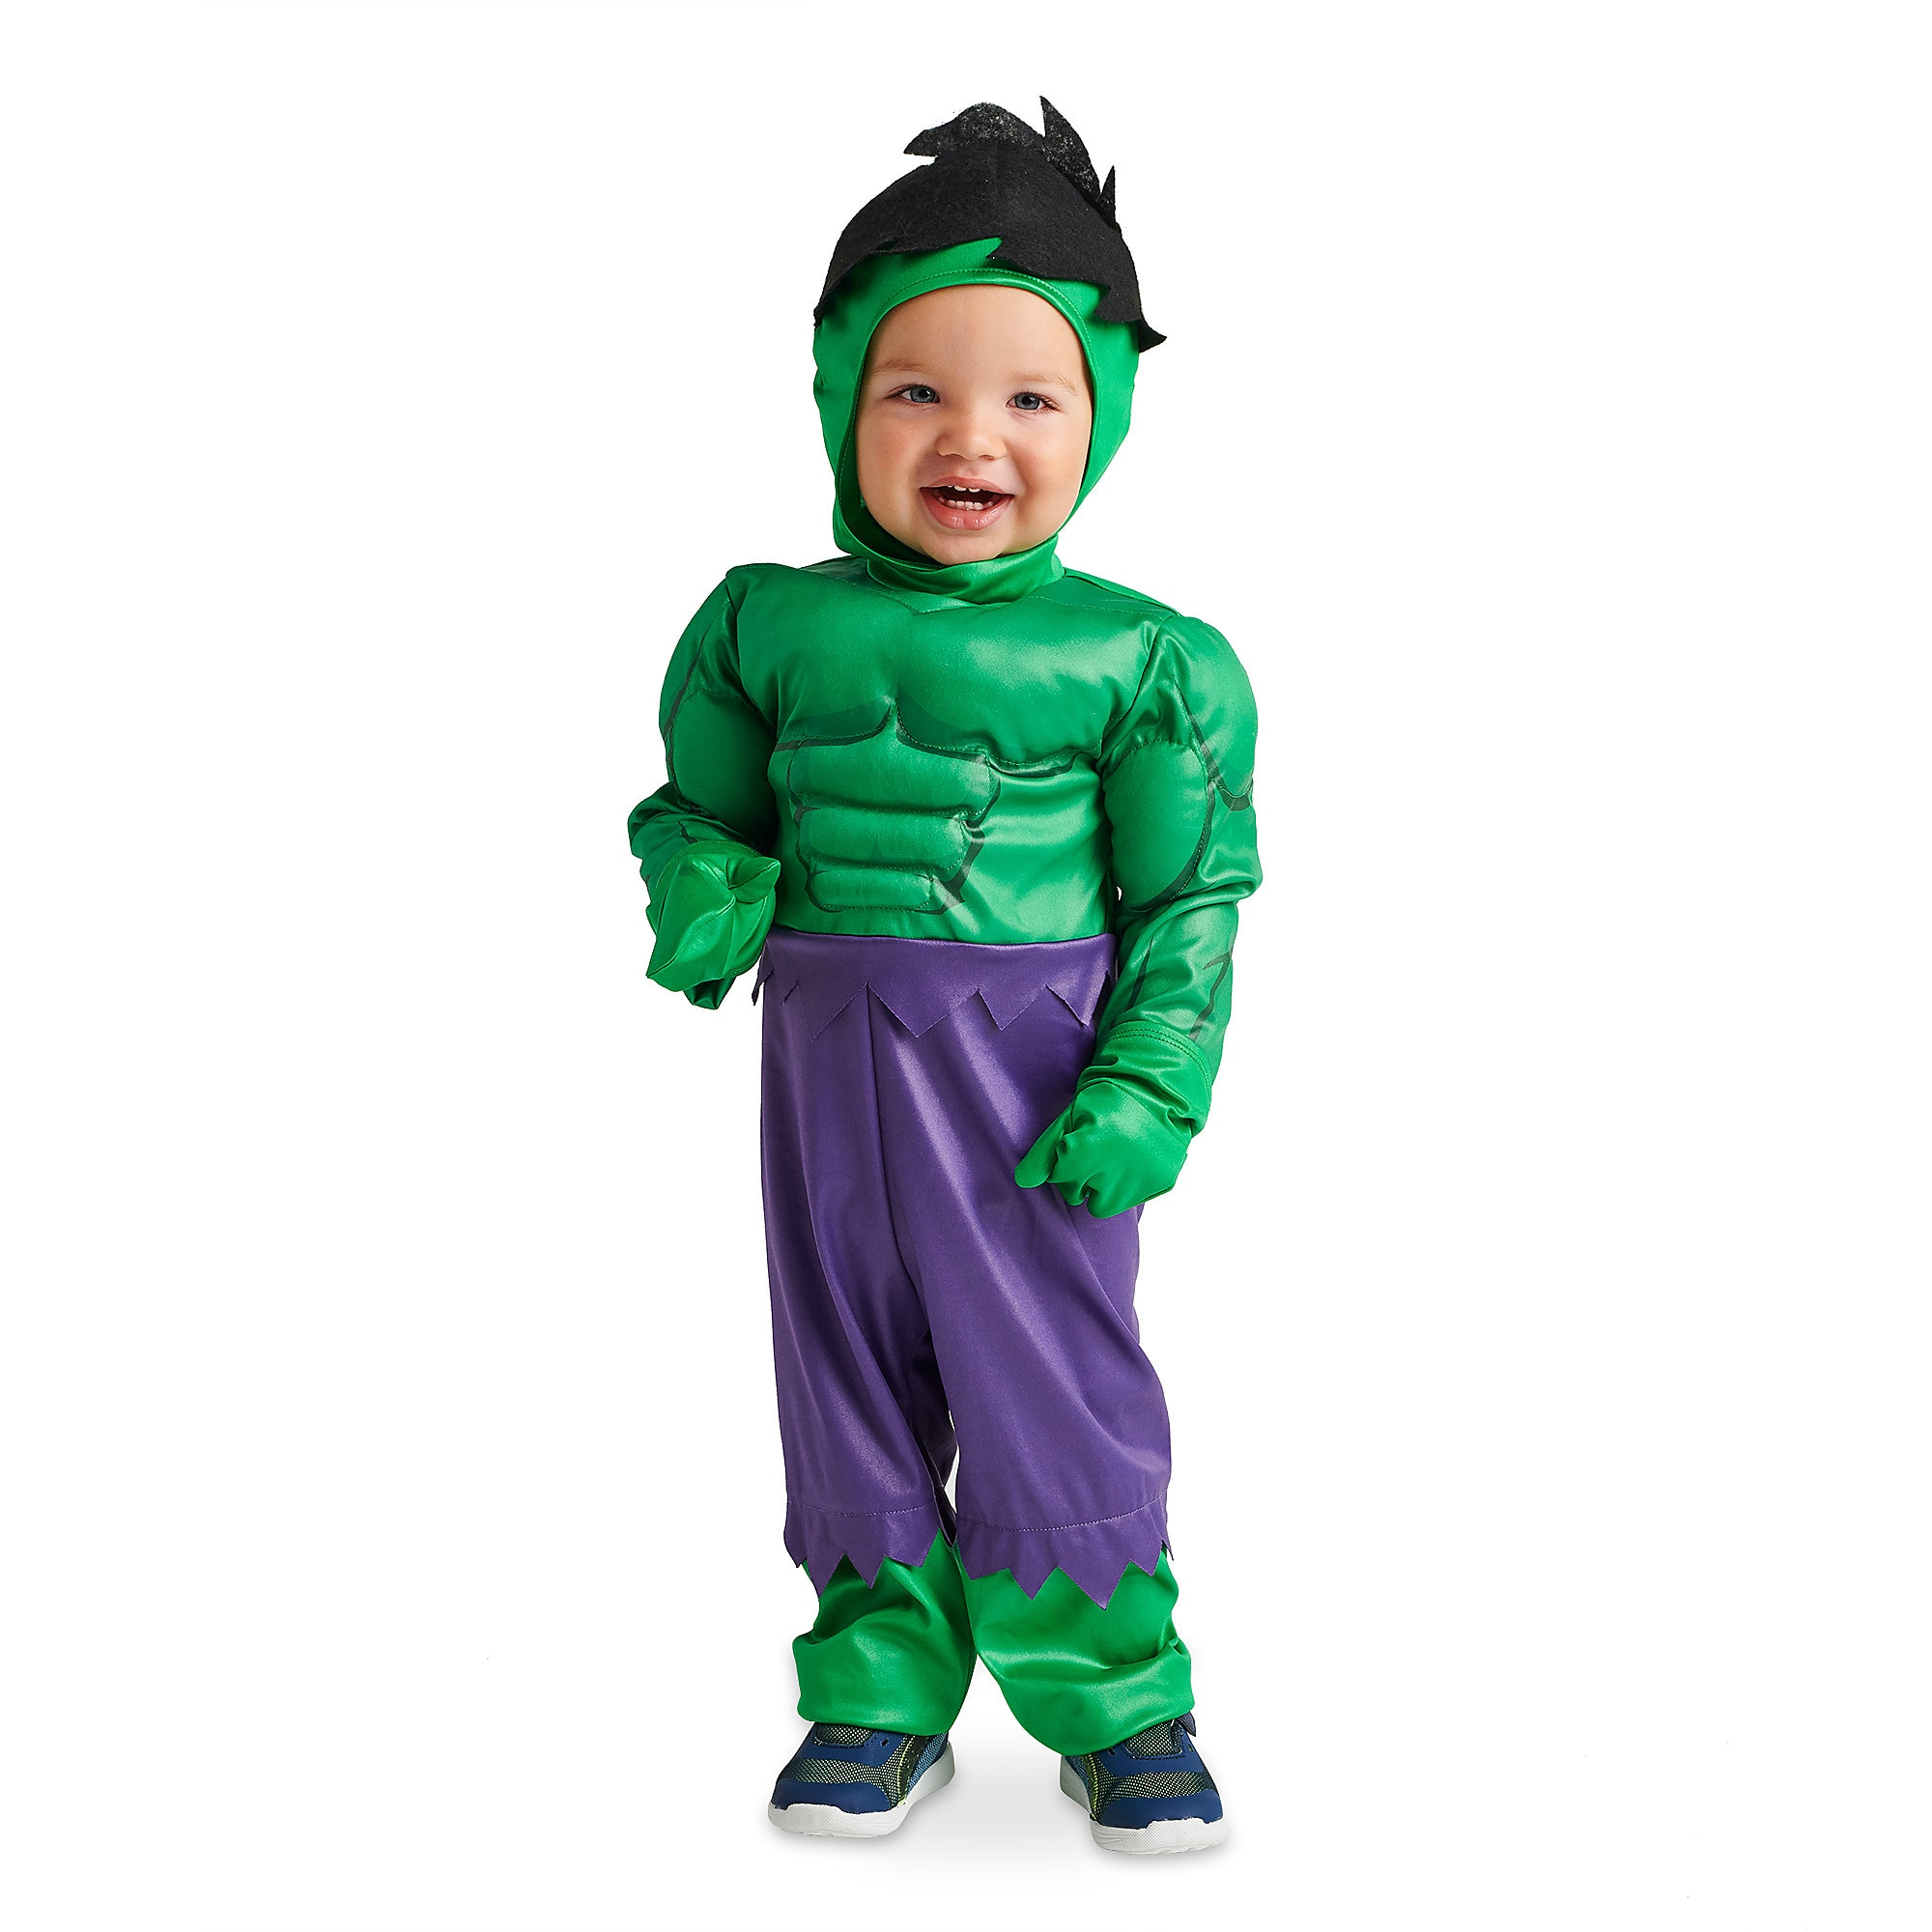 Hulk Costume for Baby  sc 1 st  shopDisney & Hulk Costume for Baby | shopDisney